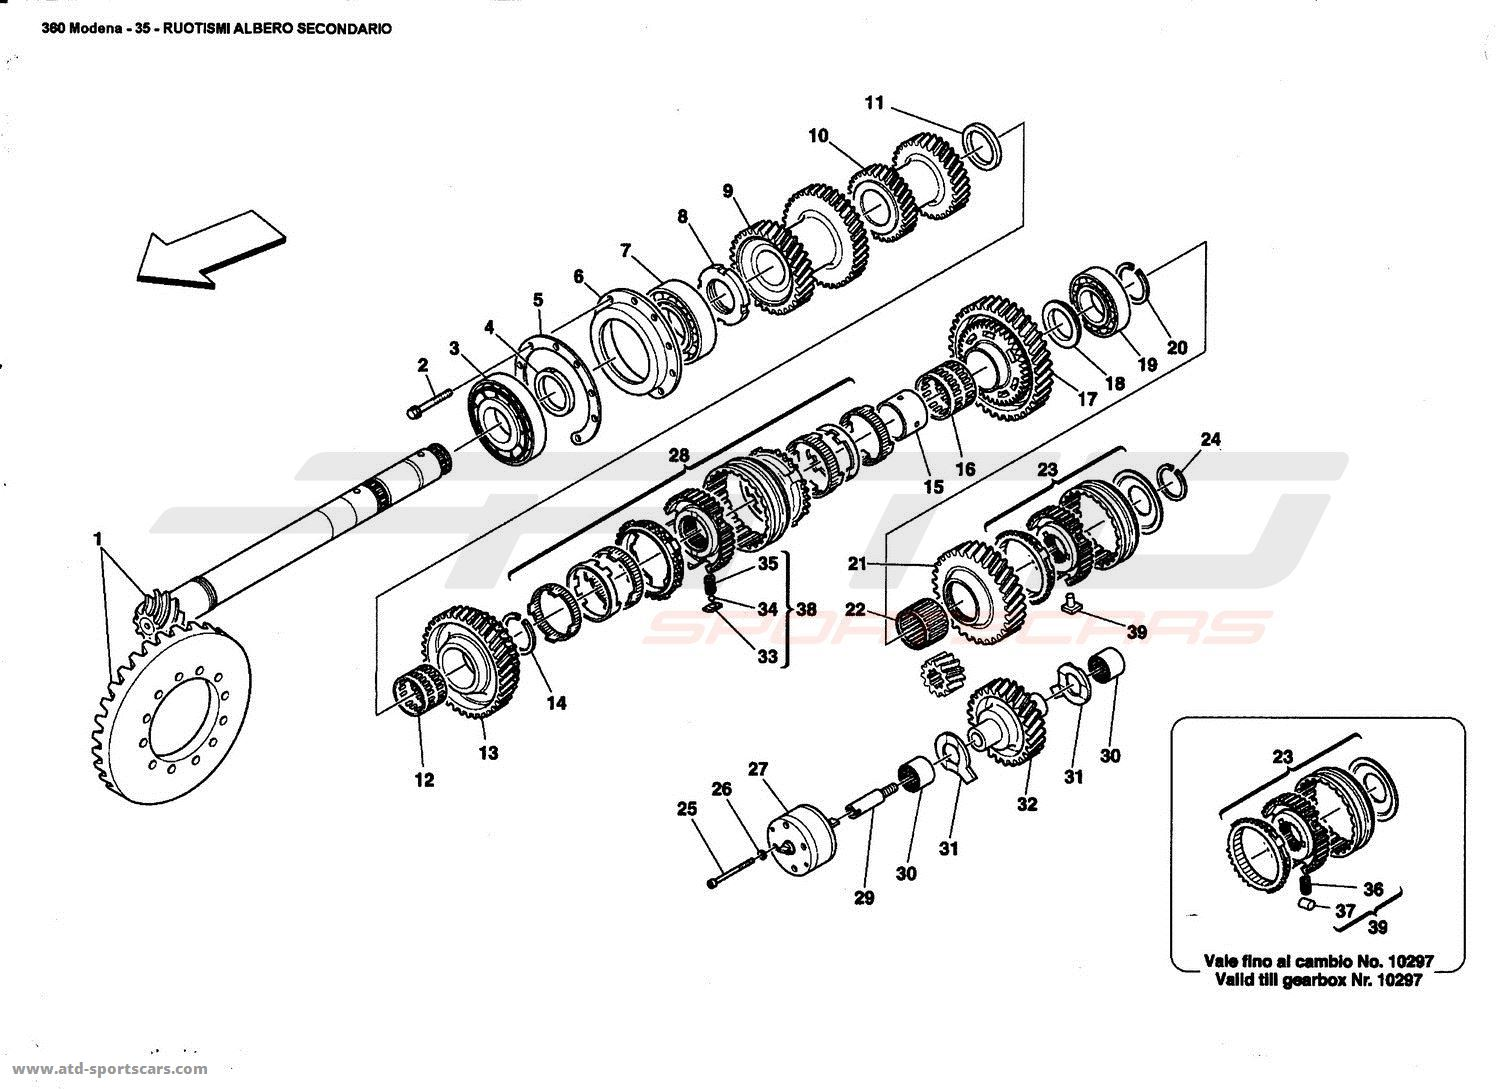 LAY SHAFT GEARS